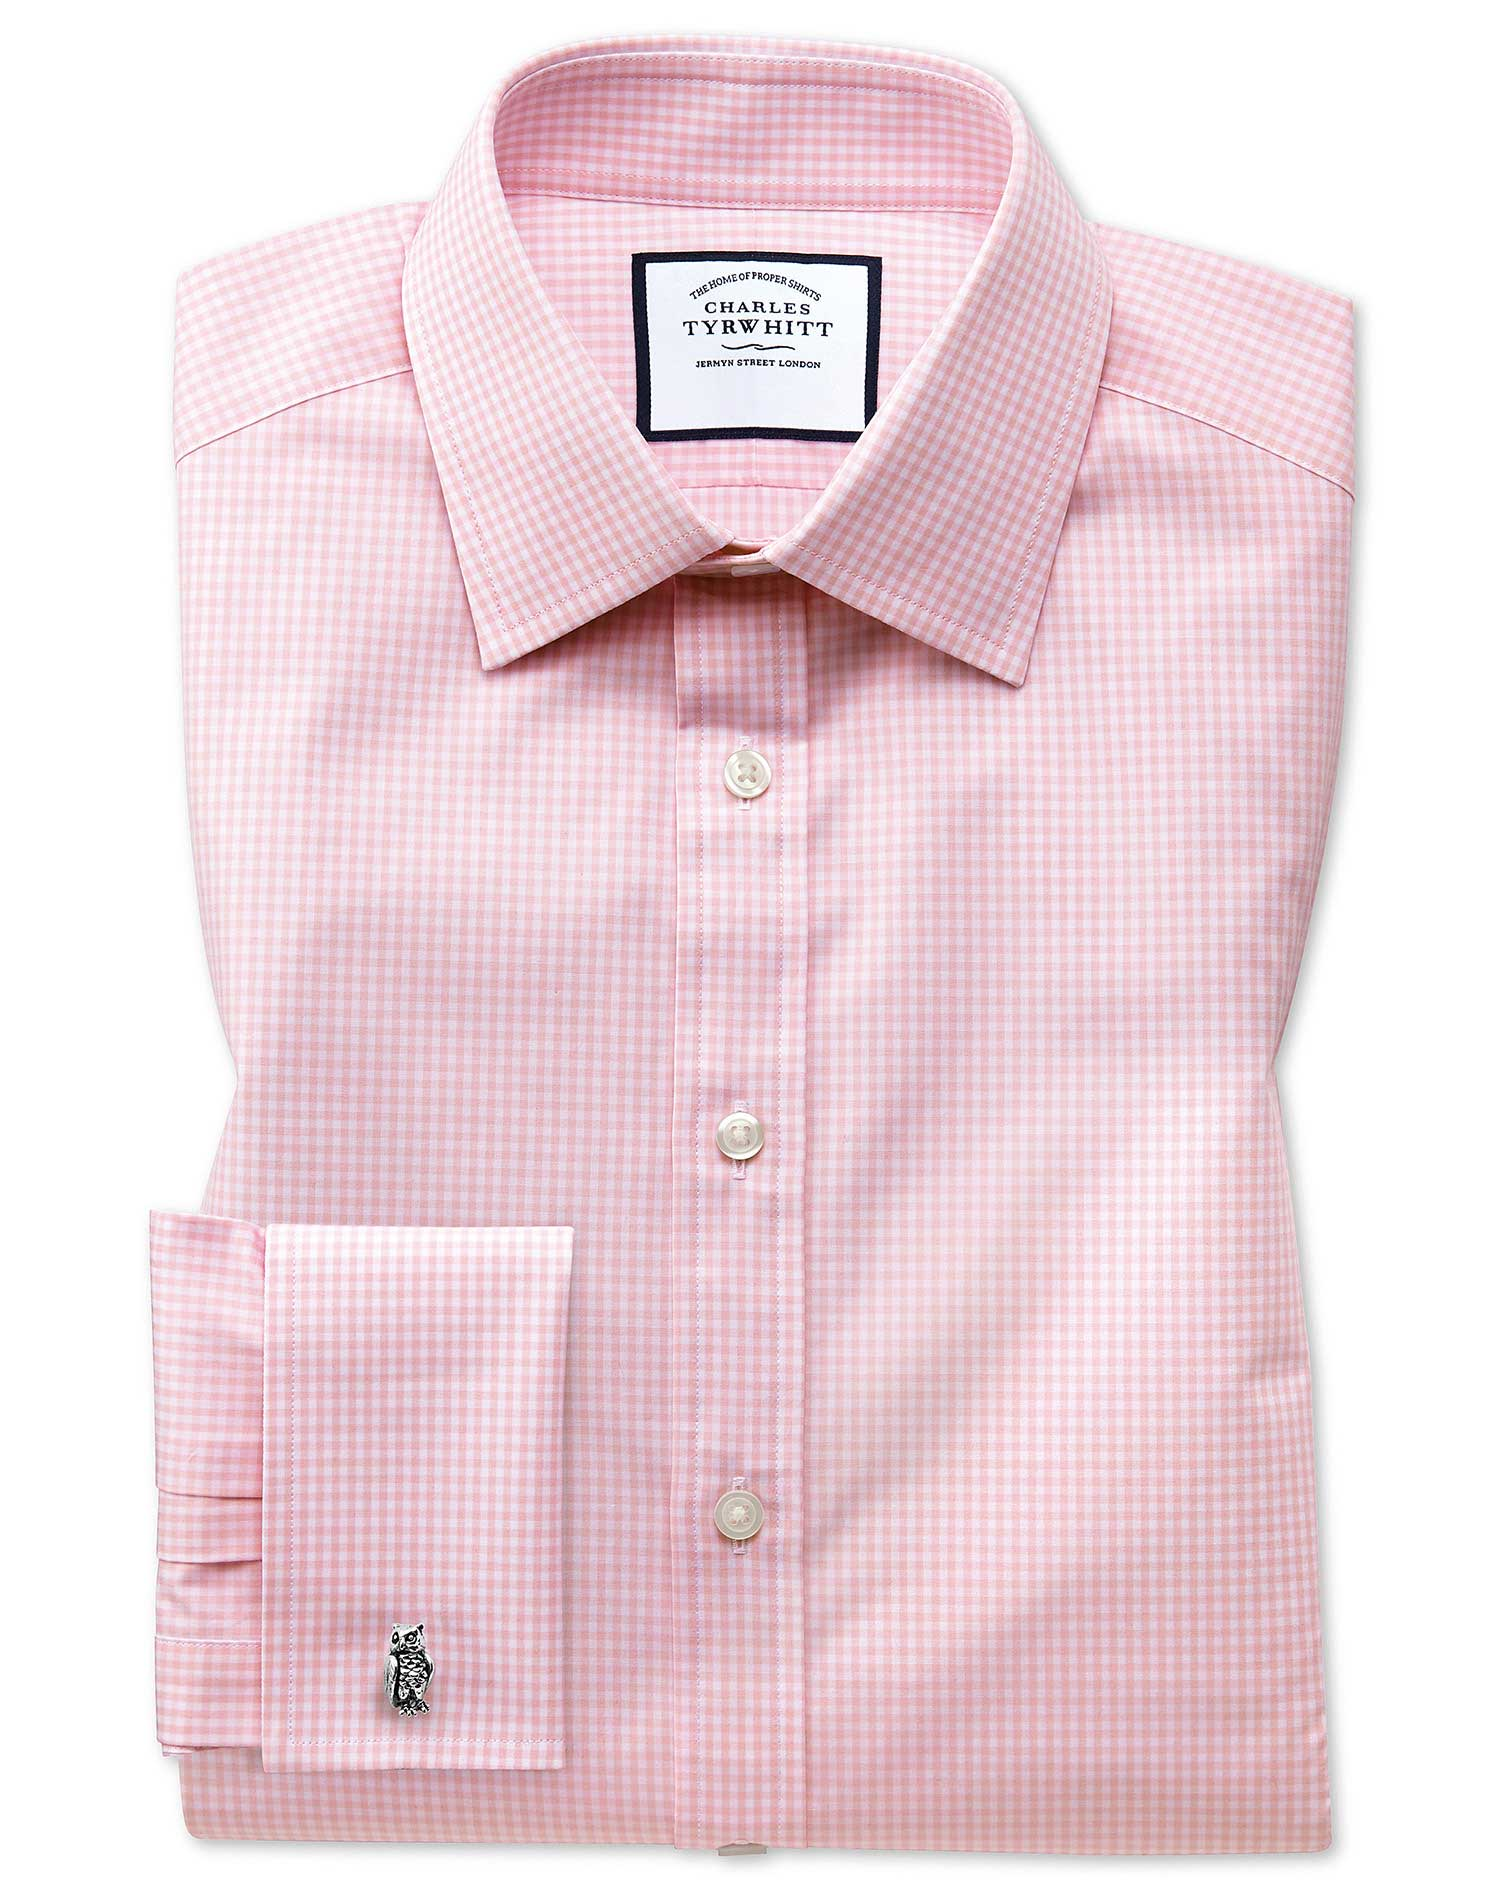 Slim Fit Small Gingham Light Pink Cotton Formal Shirt Double Cuff Size 15/33 by Charles Tyrwhitt